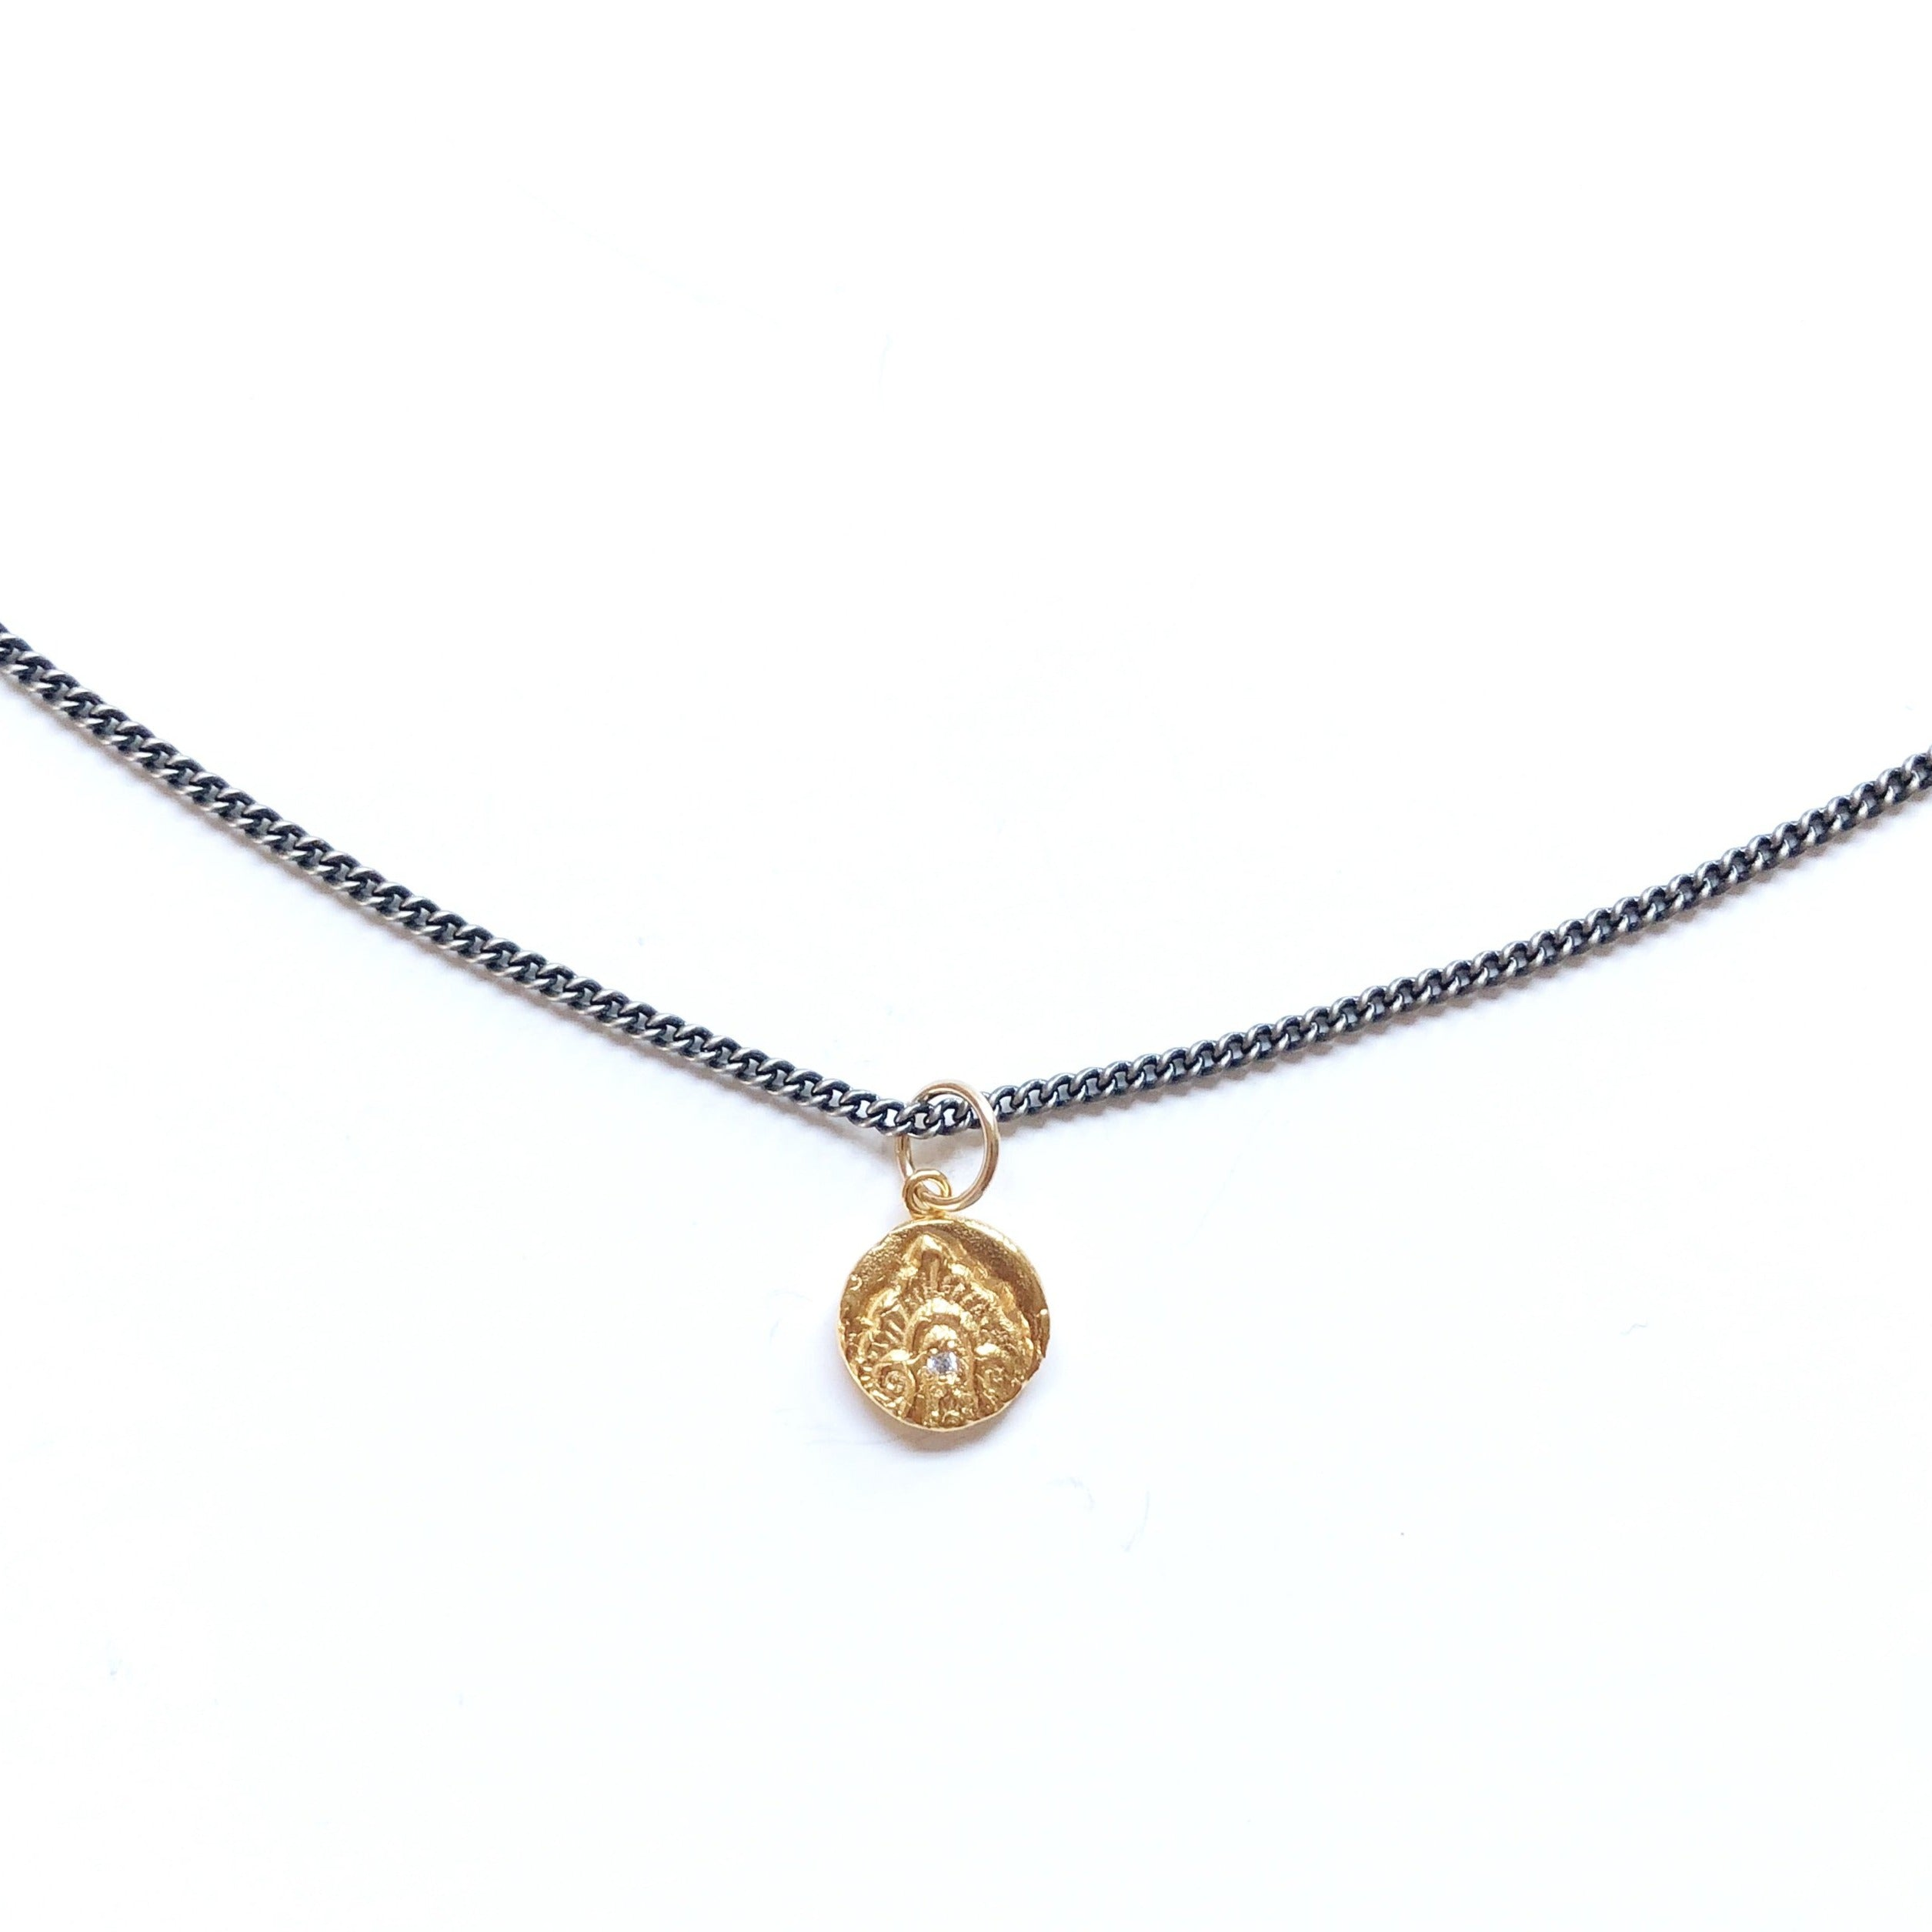 One-of-a-kind-river-charm-on-thicker-rhodium-necklace-gold-MAS-Designs-Jewelry